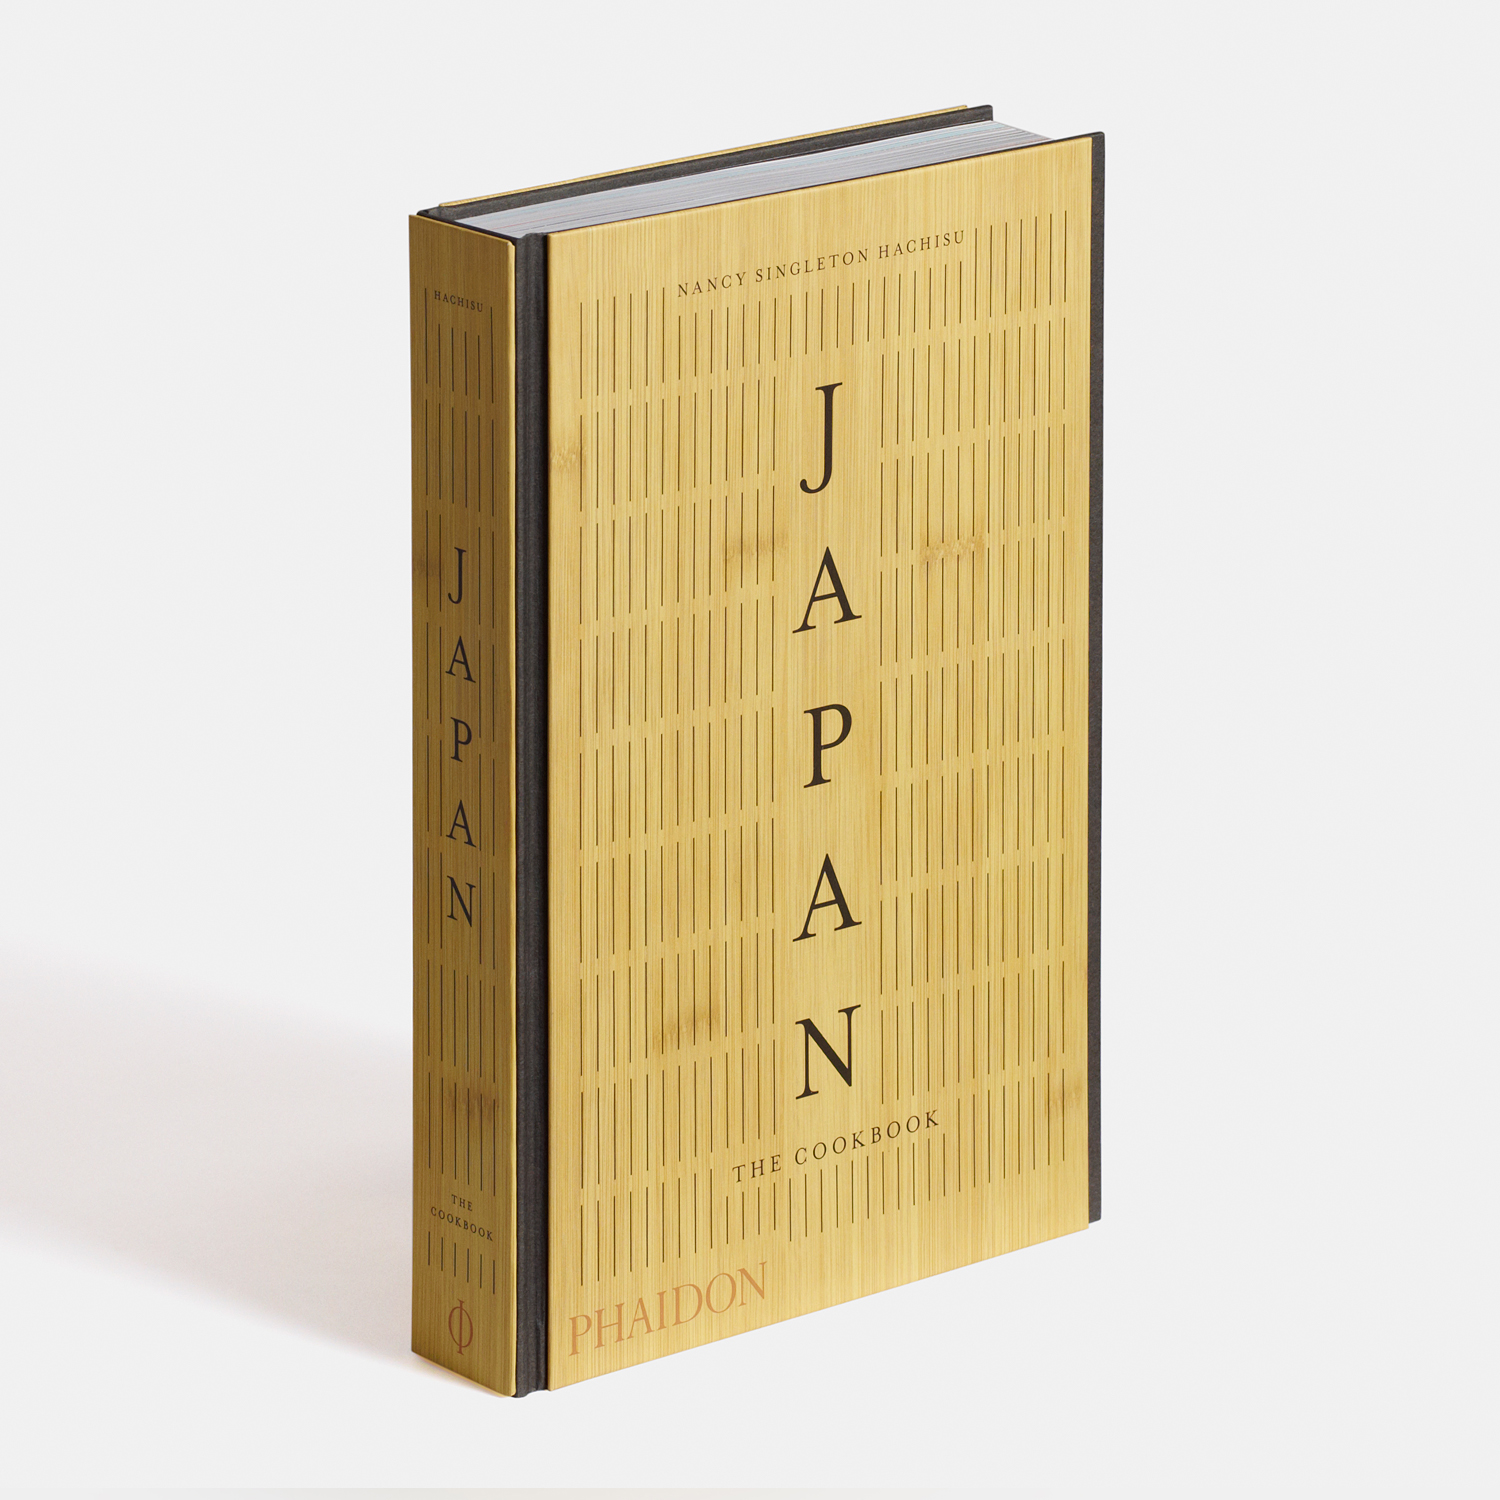 Japan: The Cookbook, a winning book at last night's D&AD awards